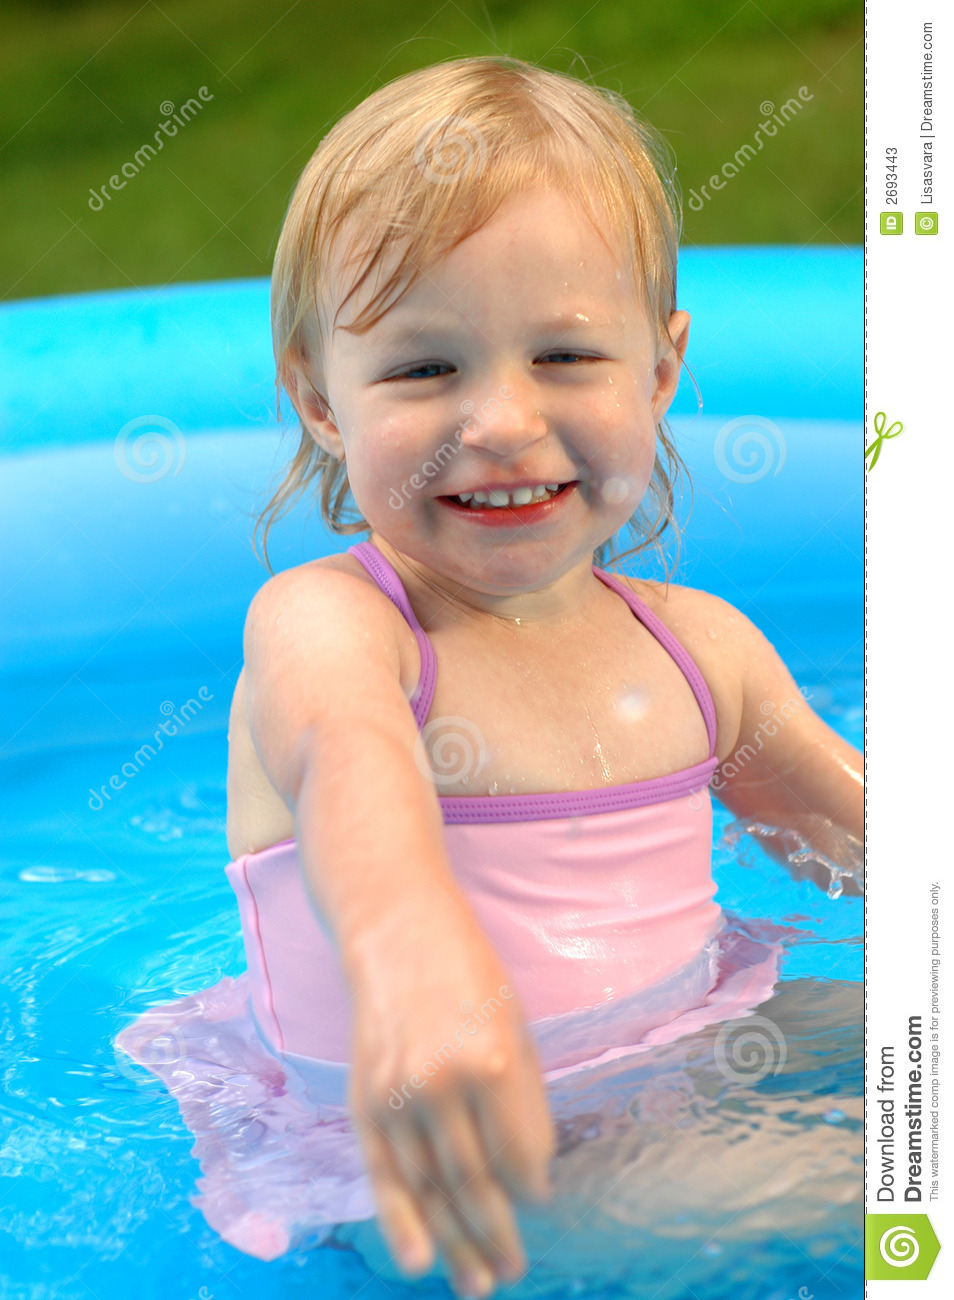 ... almost 3 years old) outside in a wading pool, wearing a pink swimsuit